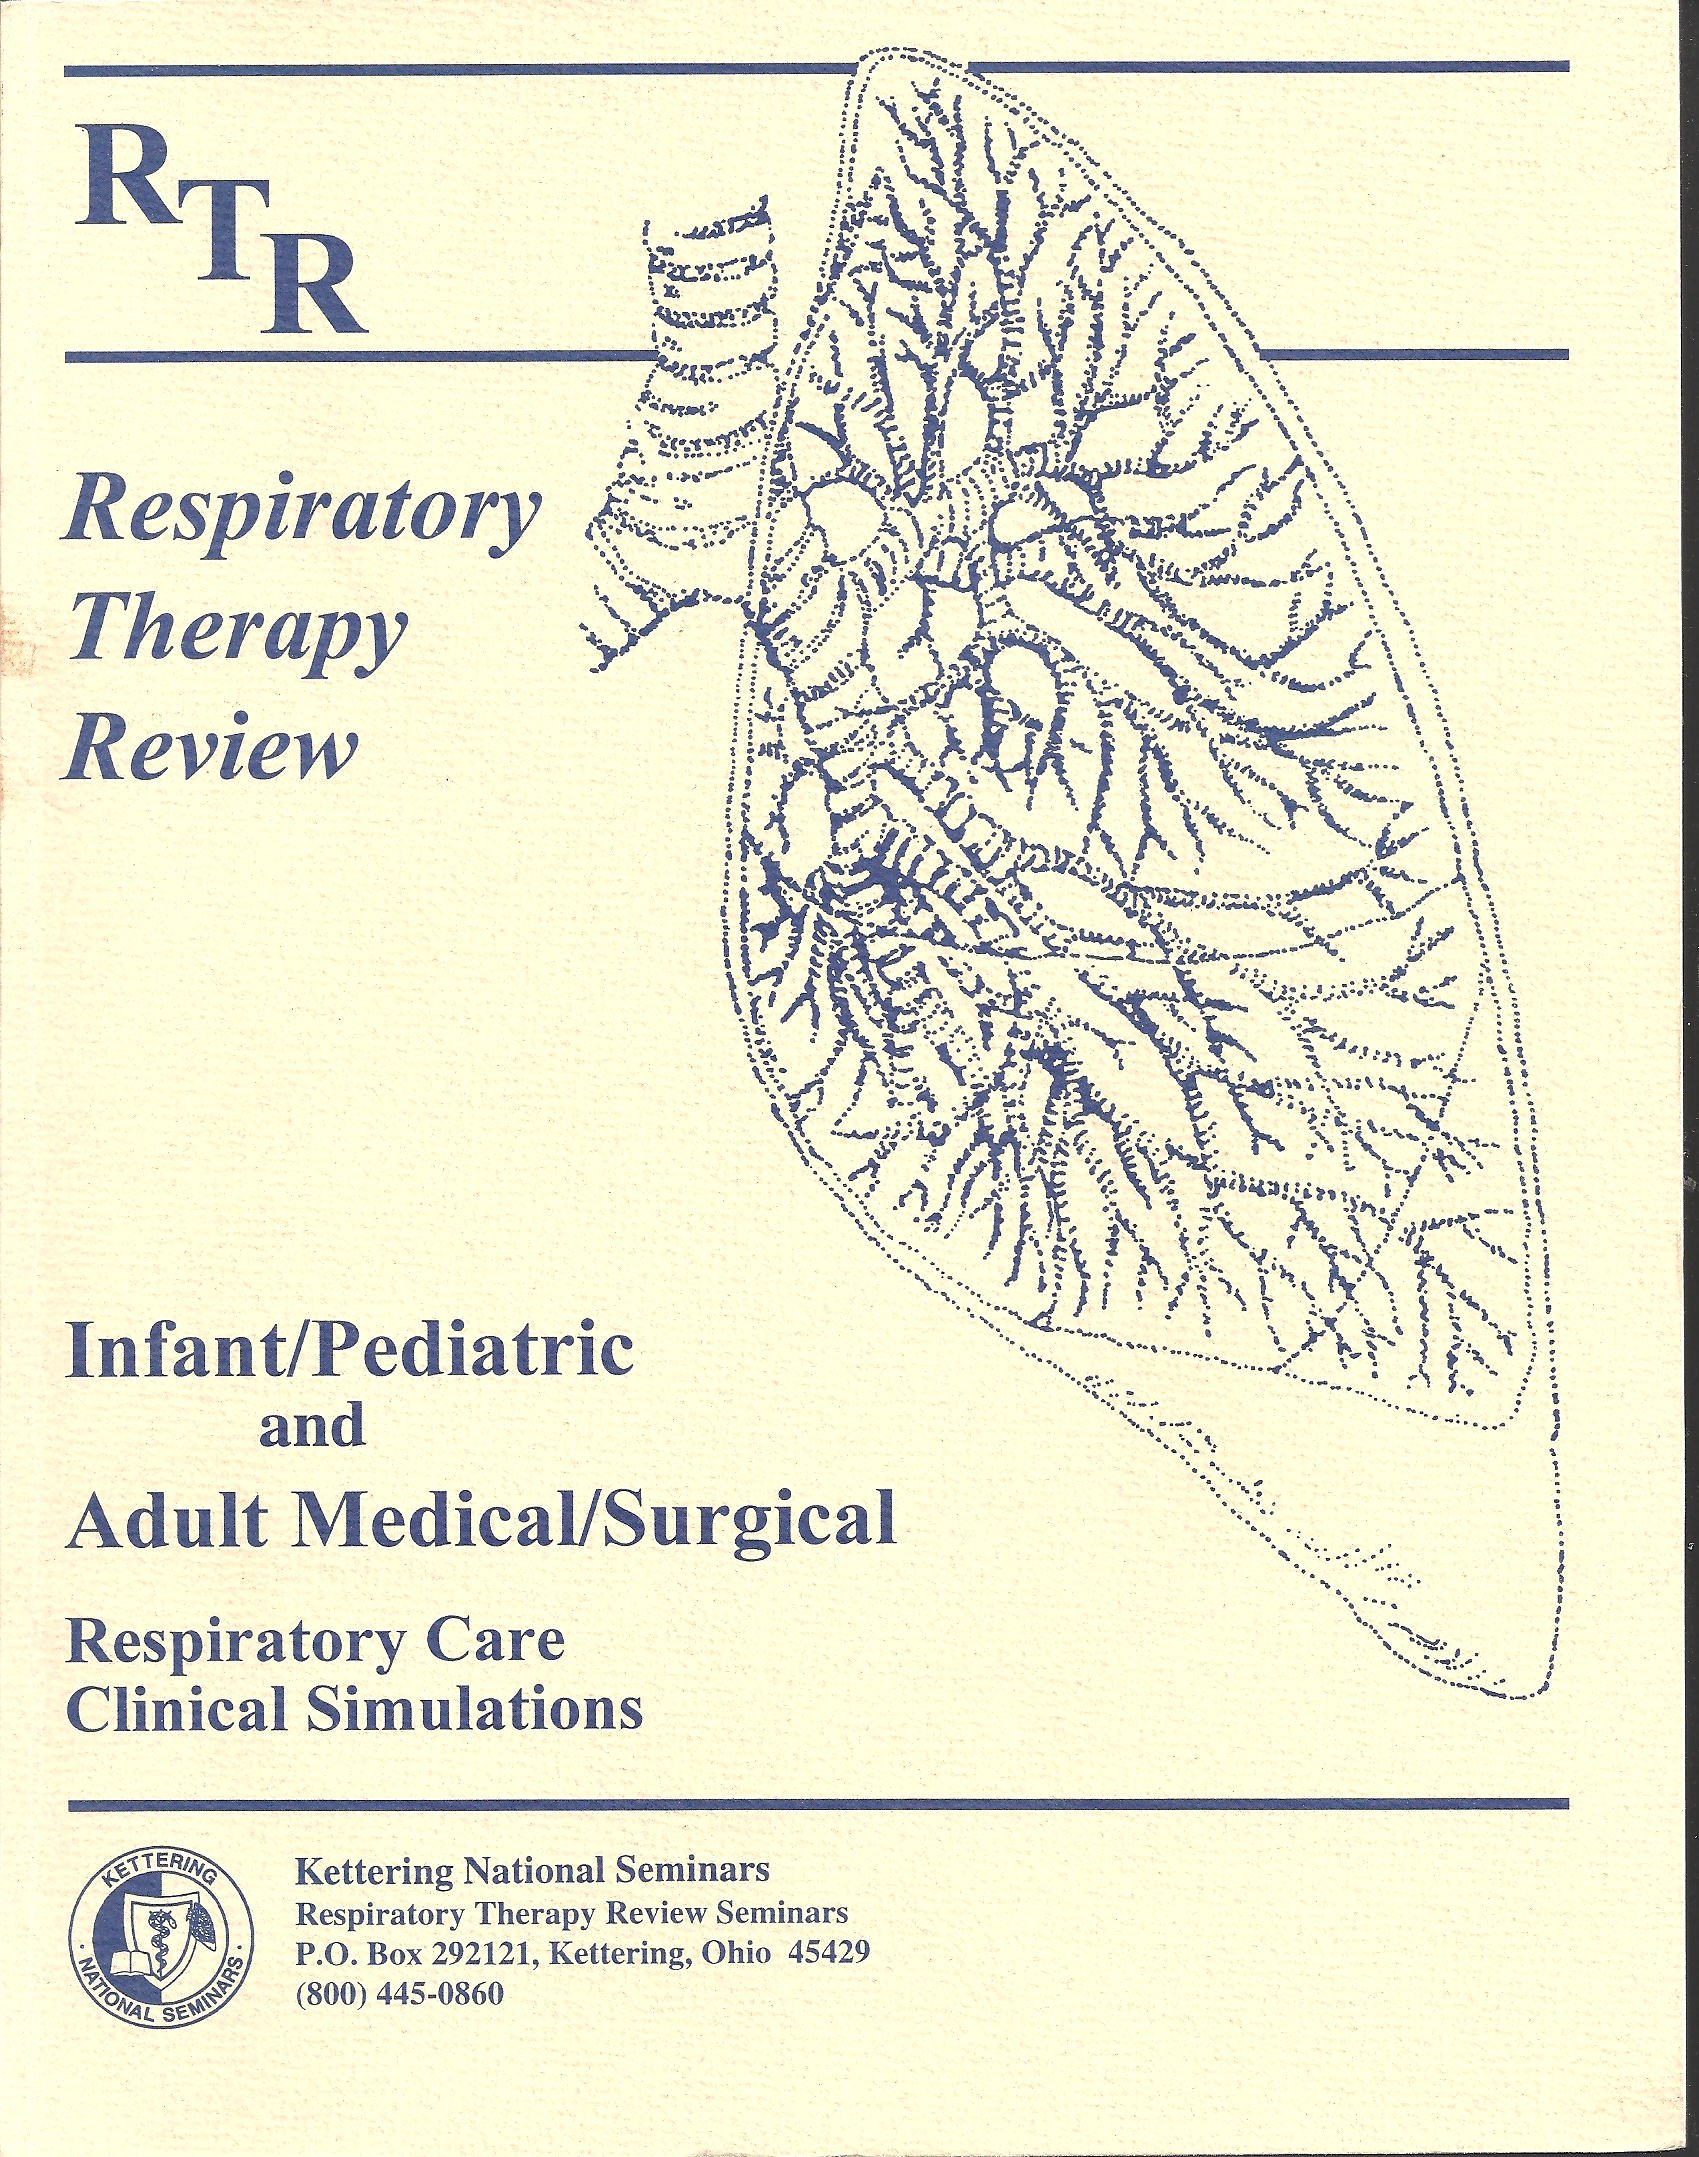 Respiratory Therapy Review (Respiratory Care Clinical